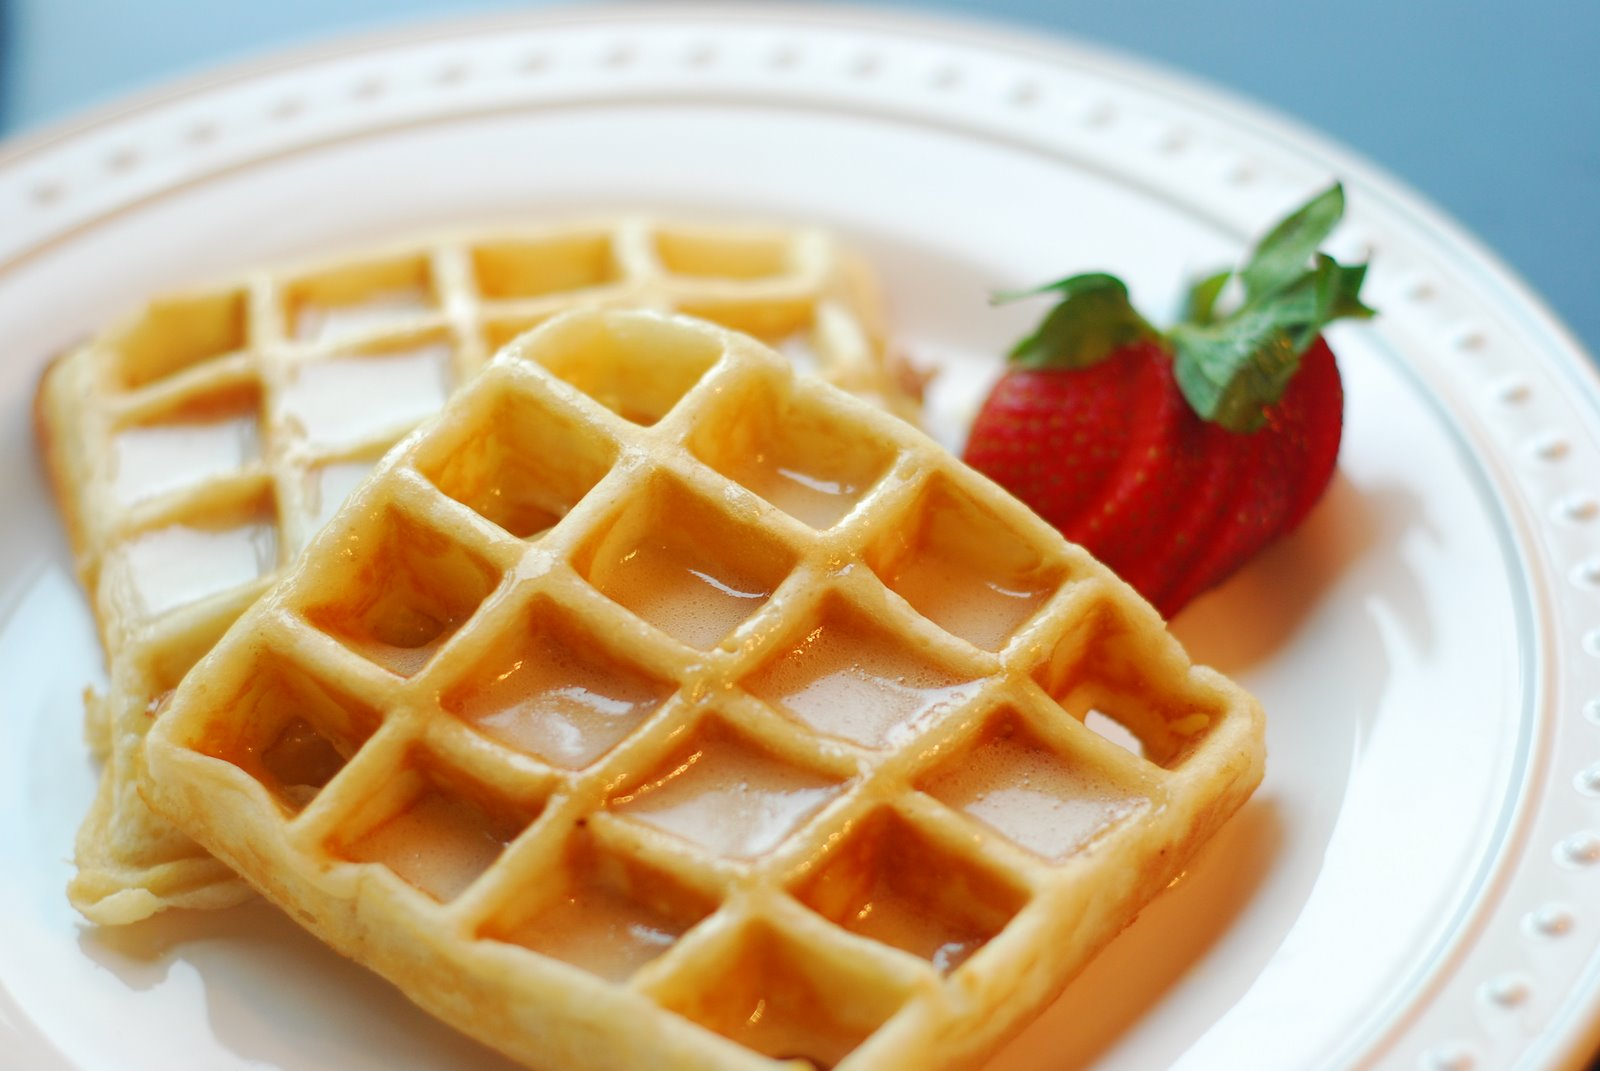 11 Interesting Facts About Belgian Waffles